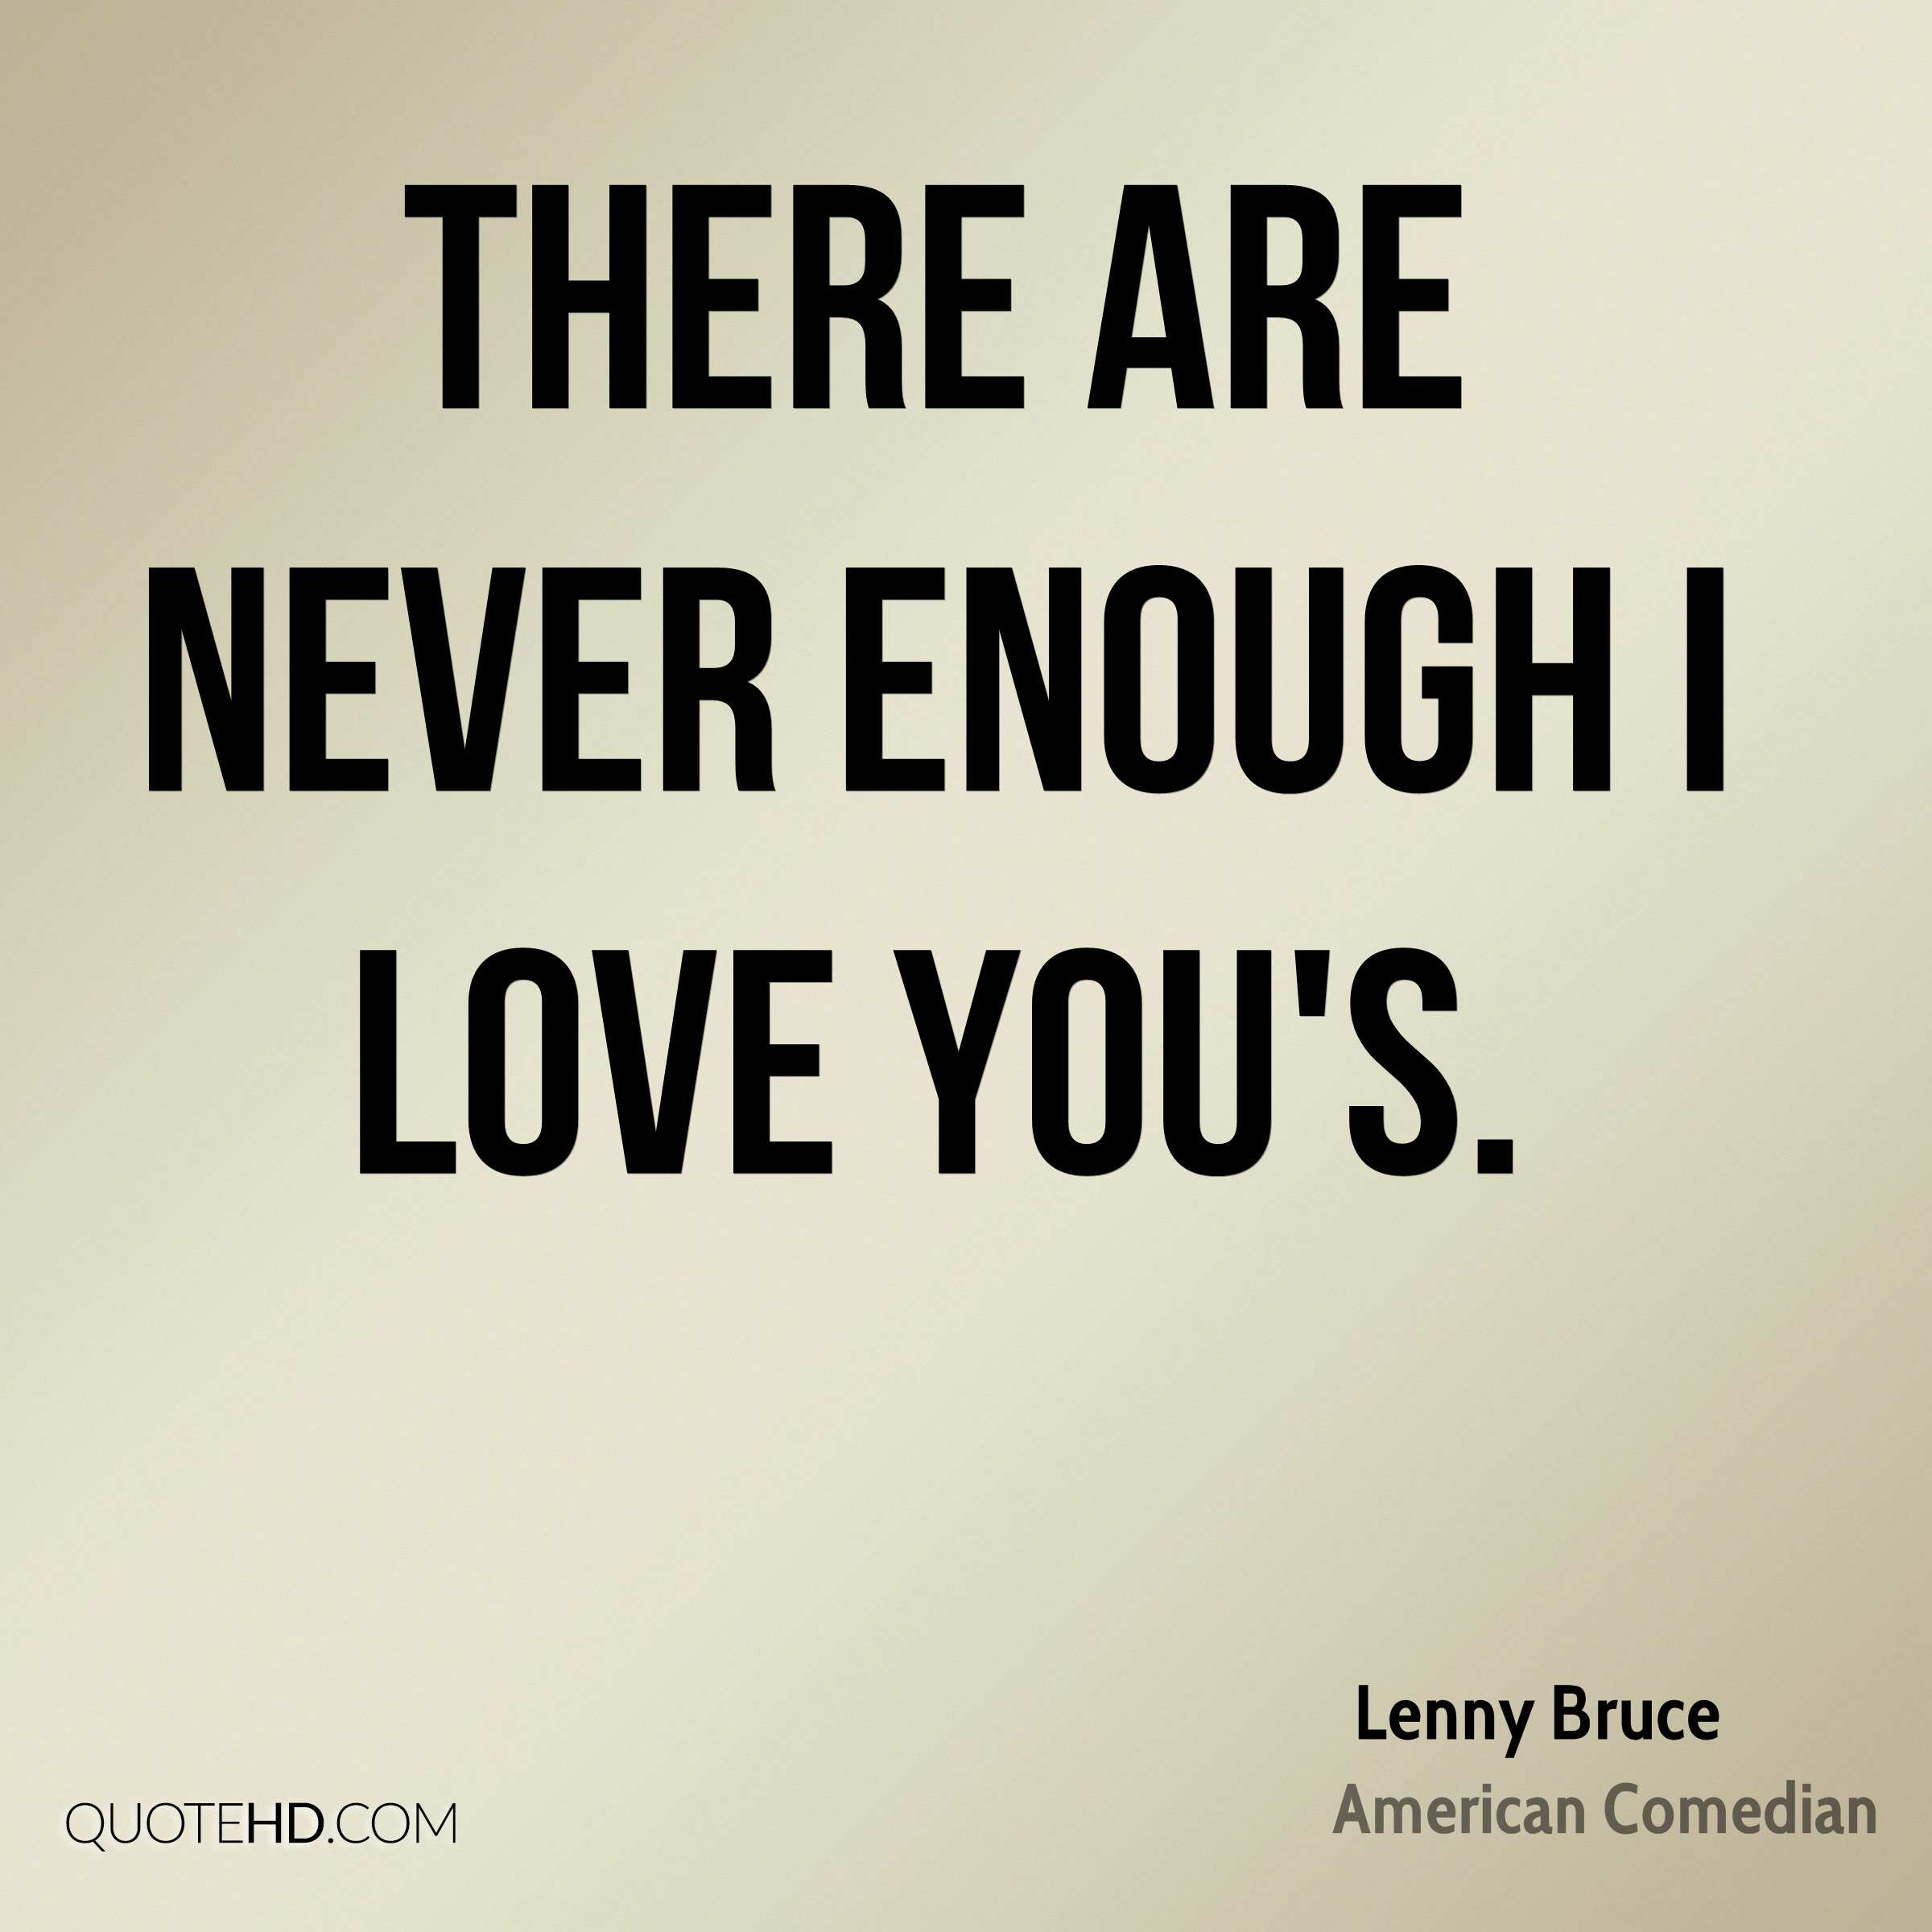 There are never enough I Love You's.